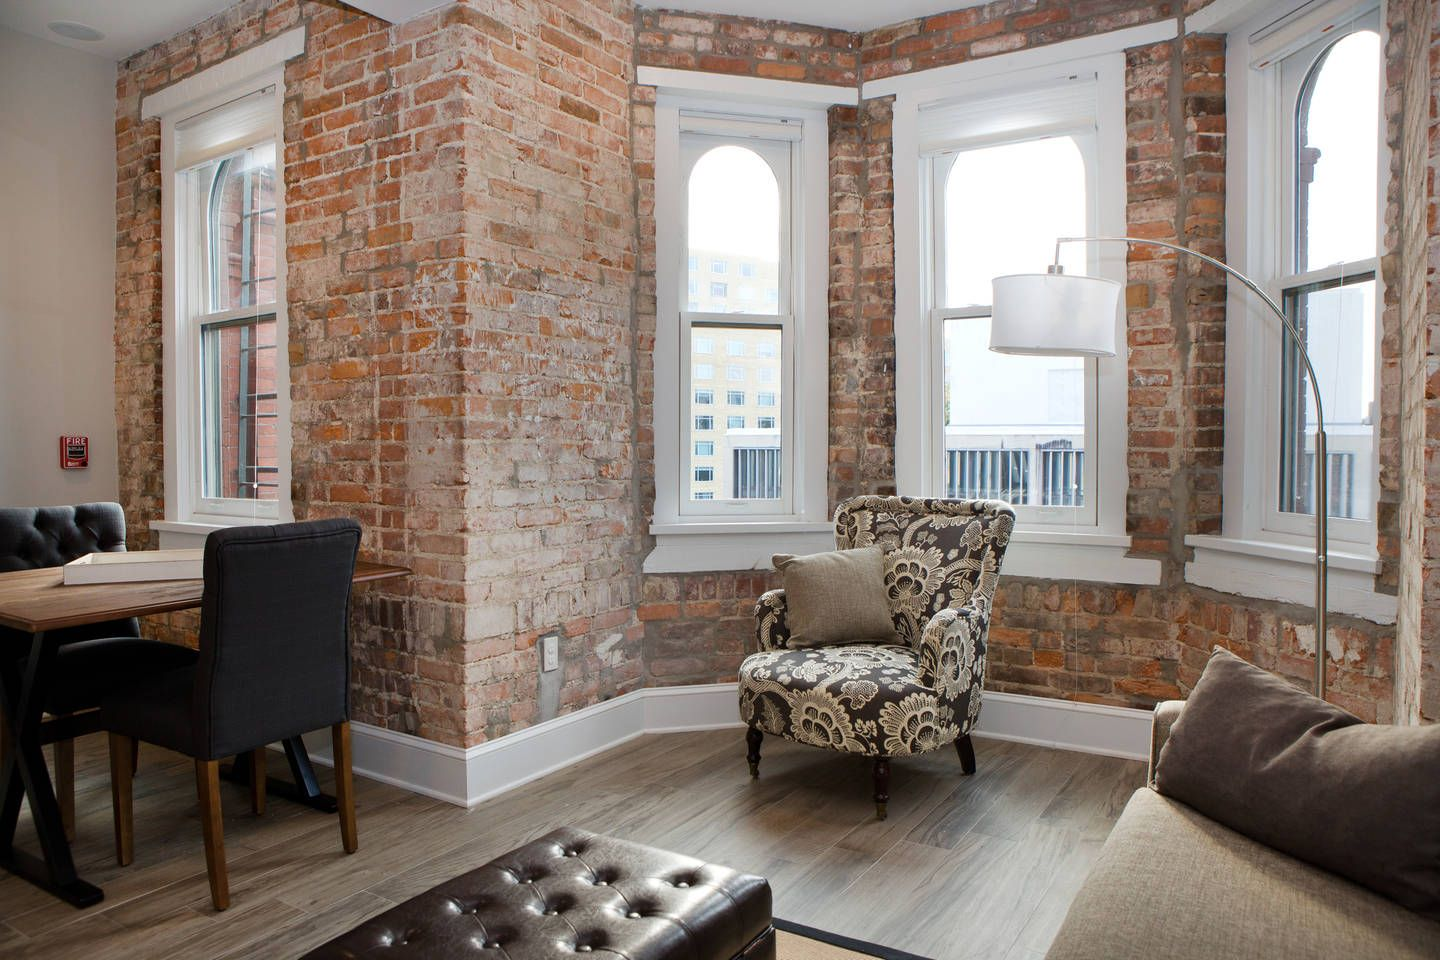 Luxury Apartment In Downtown In Washington D C Downtown Apartment Luxury Apartments Apartment Living